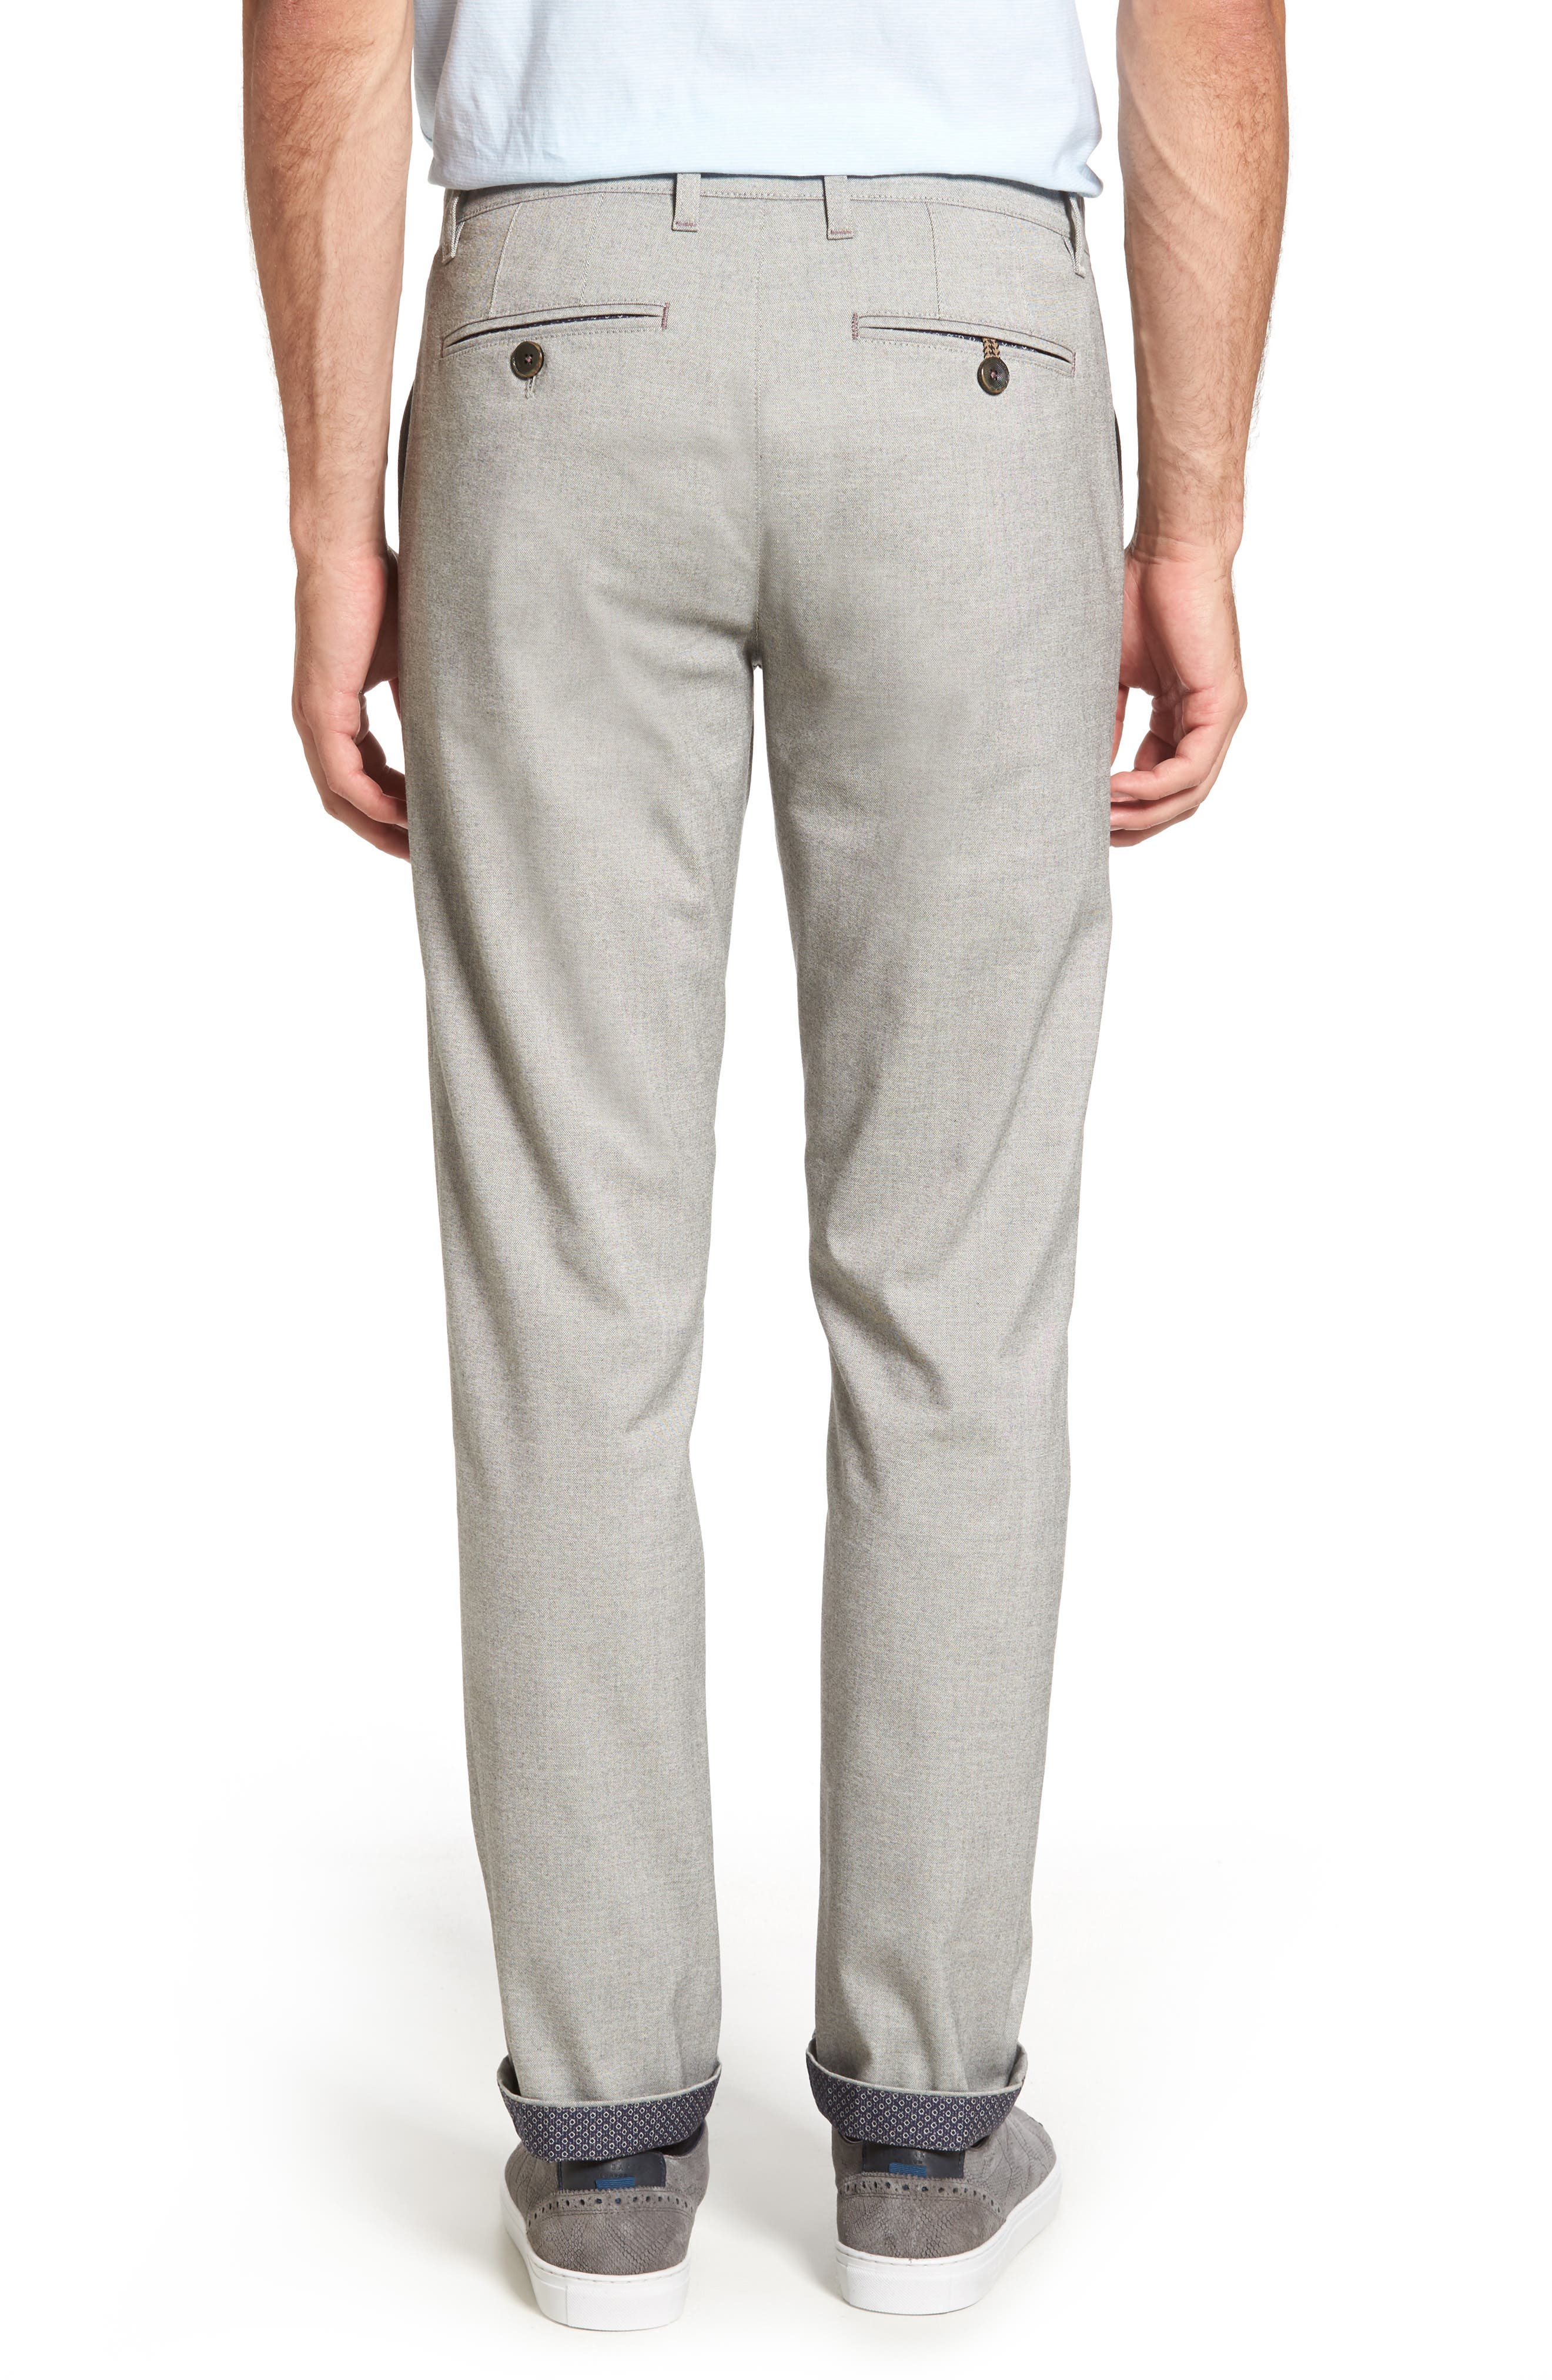 TED BAKER LONDON,                             Volvek Classic Fit Trousers,                             Alternate thumbnail 2, color,                             030